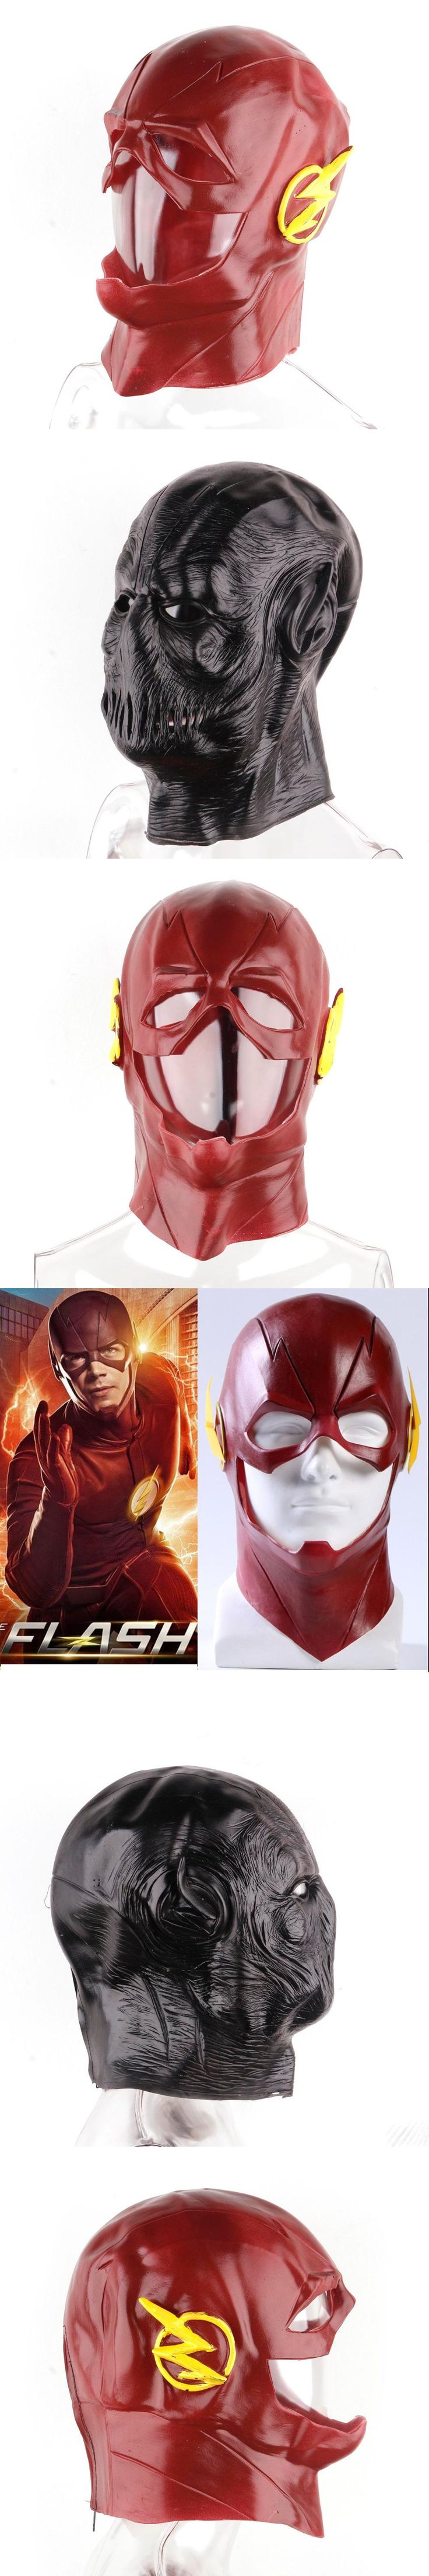 2 Types The Flash DC Movie Mask Black Red Color Halloween Home Party Full Face Mask Masquerade Parties Cosplay Costume Prop